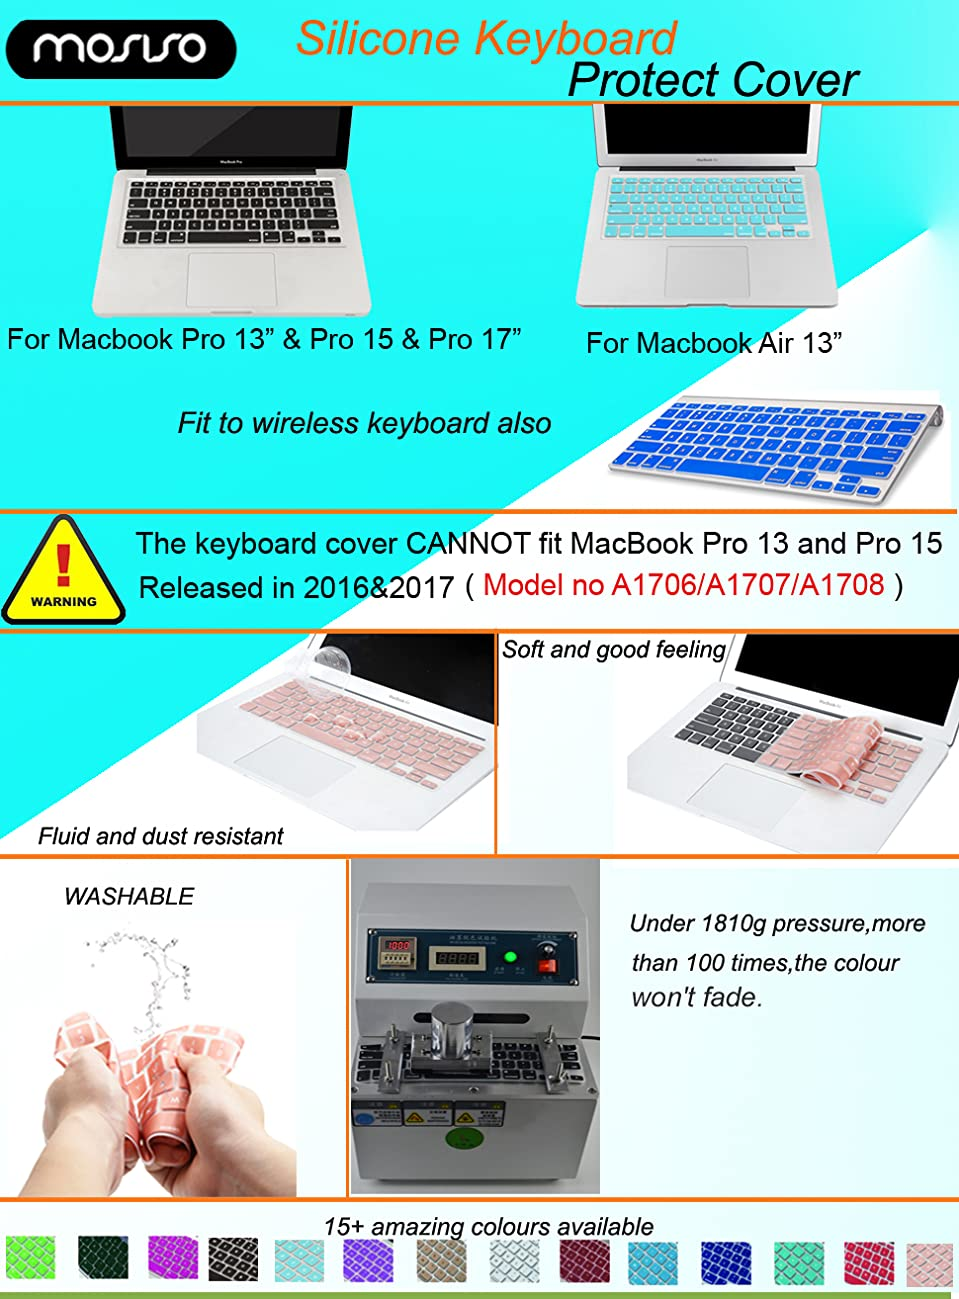 MOSISO Silicone Keyboard Cover Compatible MacBook Pro 13/15 Inch  (with/Without Retina Display, 2015 or Older Version), Older MacBook Air 13  Inch